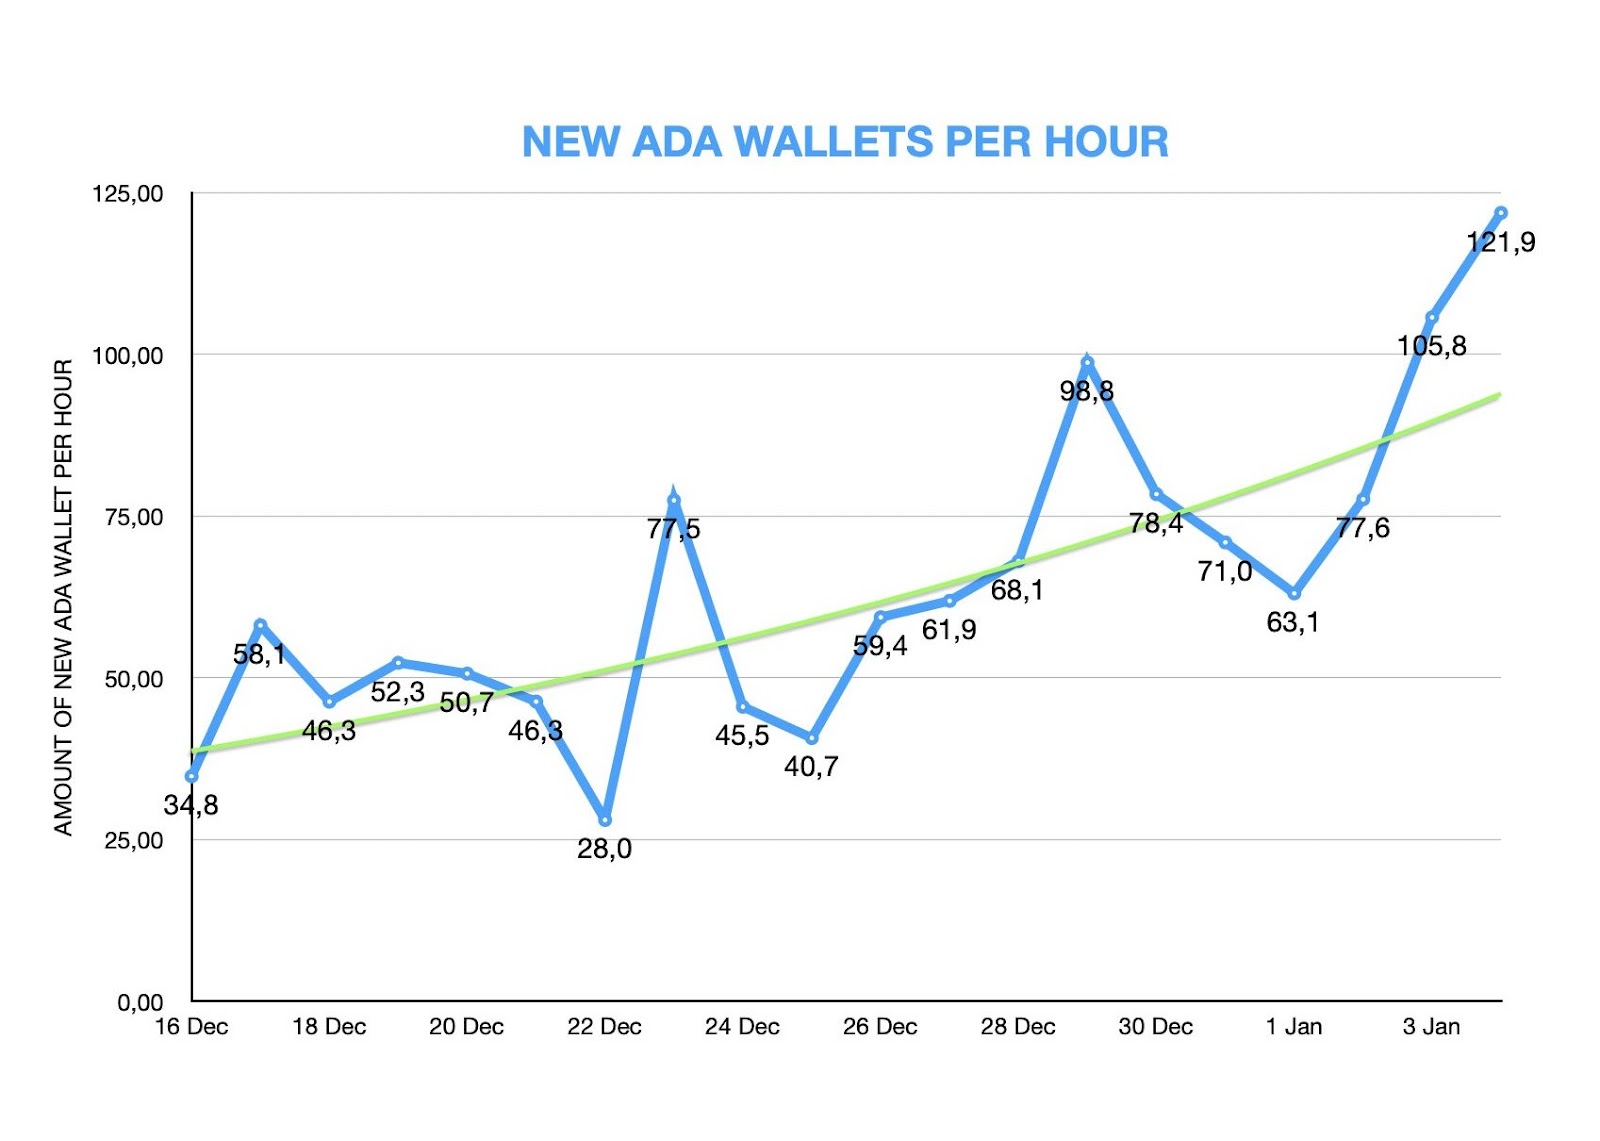 Graph showing the number of new ADA wallets created every hour from Dec. 16 to Jan. 4